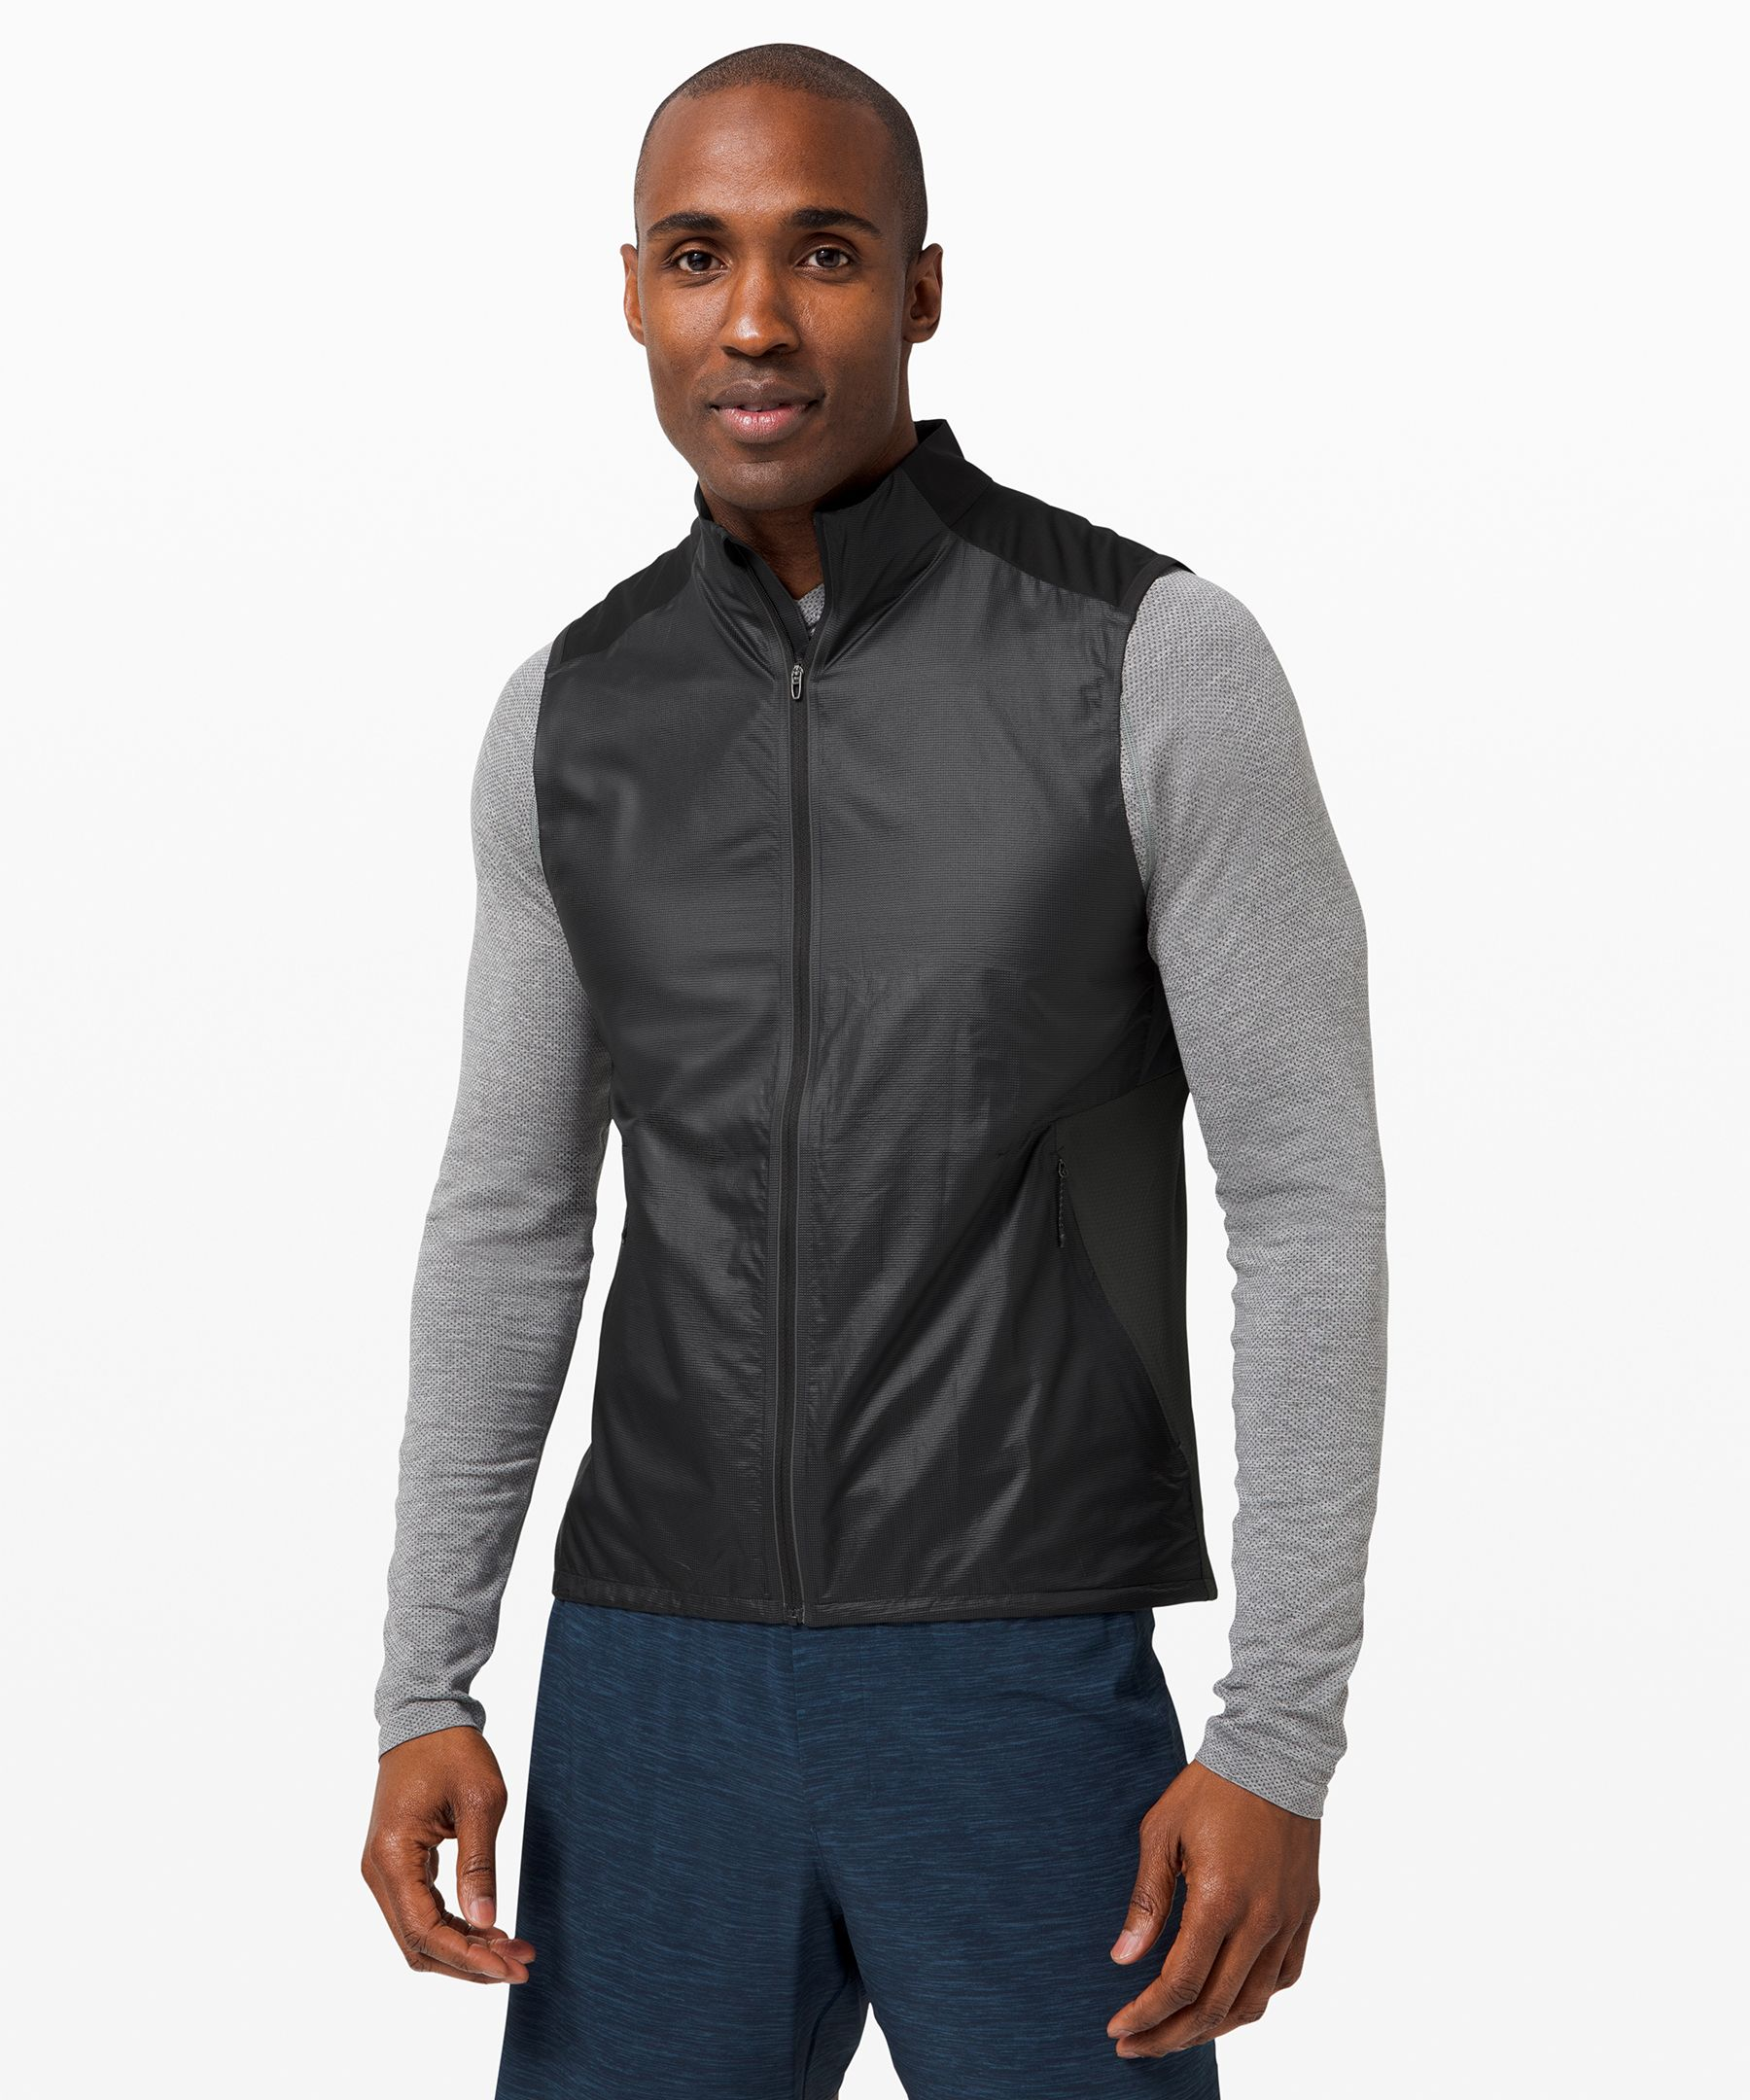 Power through your last mile  with nothing holding you back.  Designed to be your optimum  running layer with a fit  that\'s made to move, this vest  is made from water-repellent  fabric on the front to protect  your core, and a Mesh fabric  back to let your body breathe.